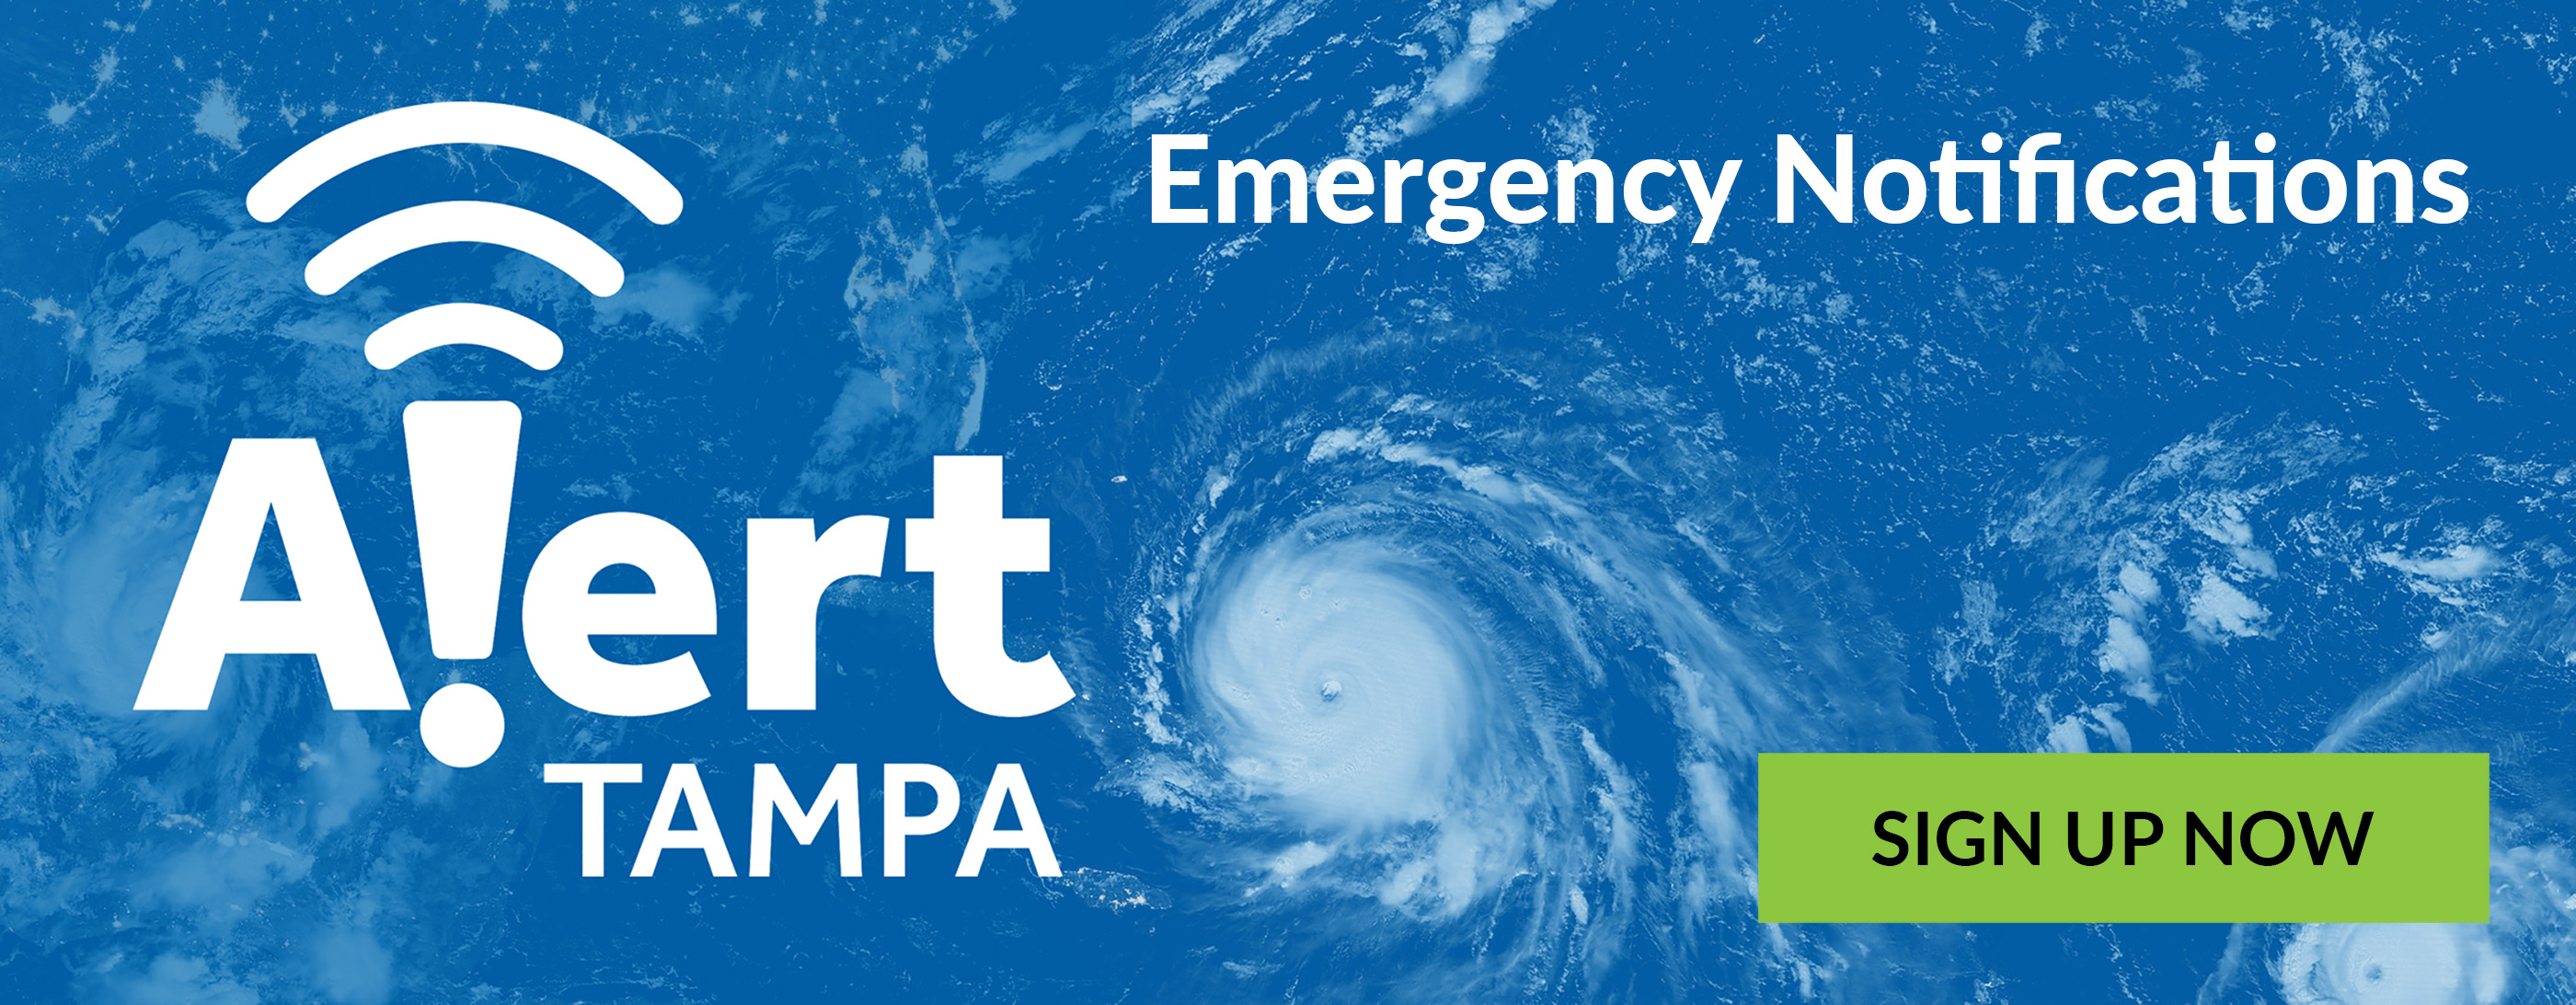 Alert Tampa - Emergency Notifications - Sign up Now